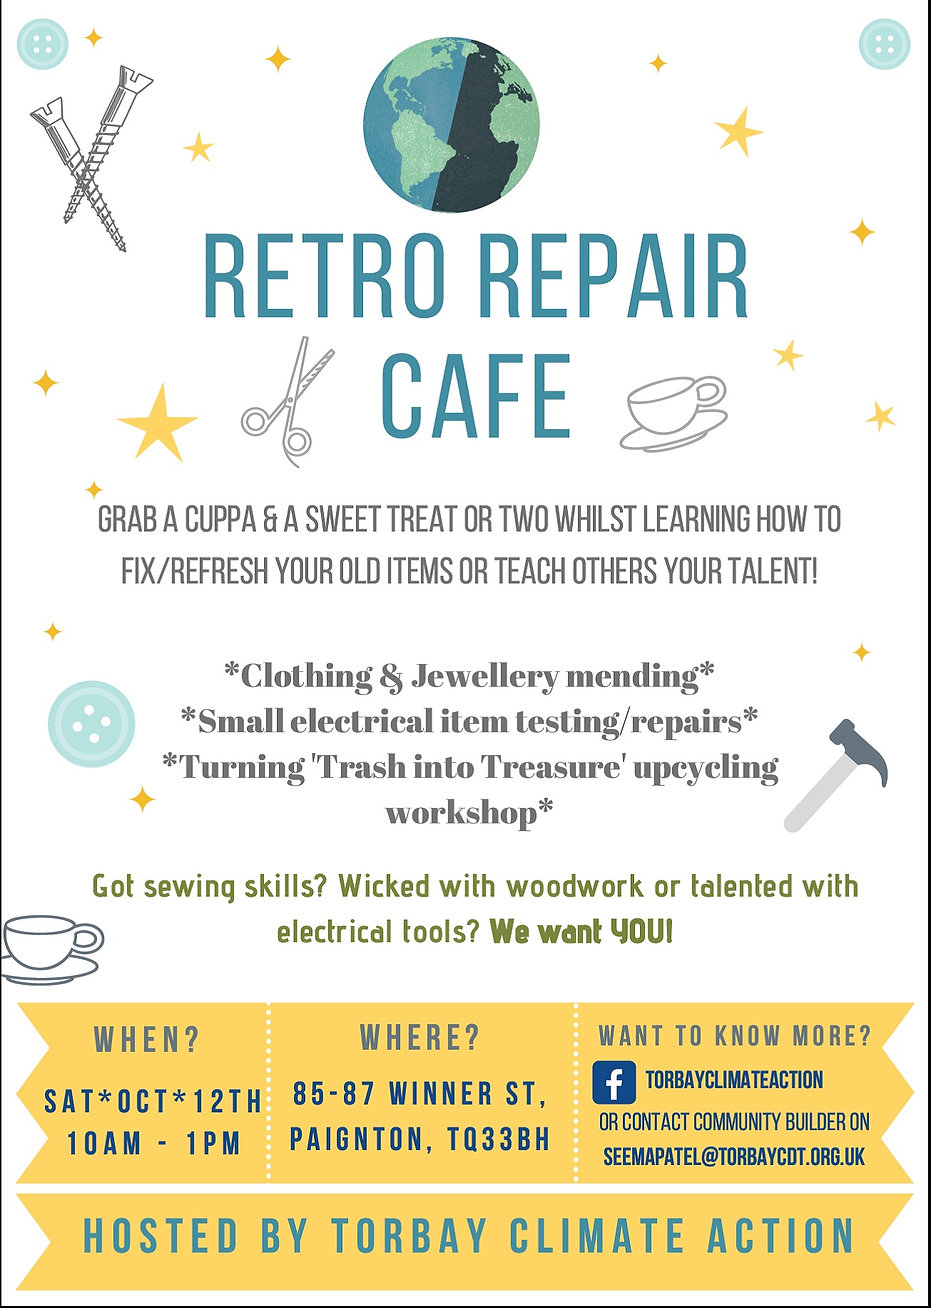 Retro Repair Cafe pic.jpg